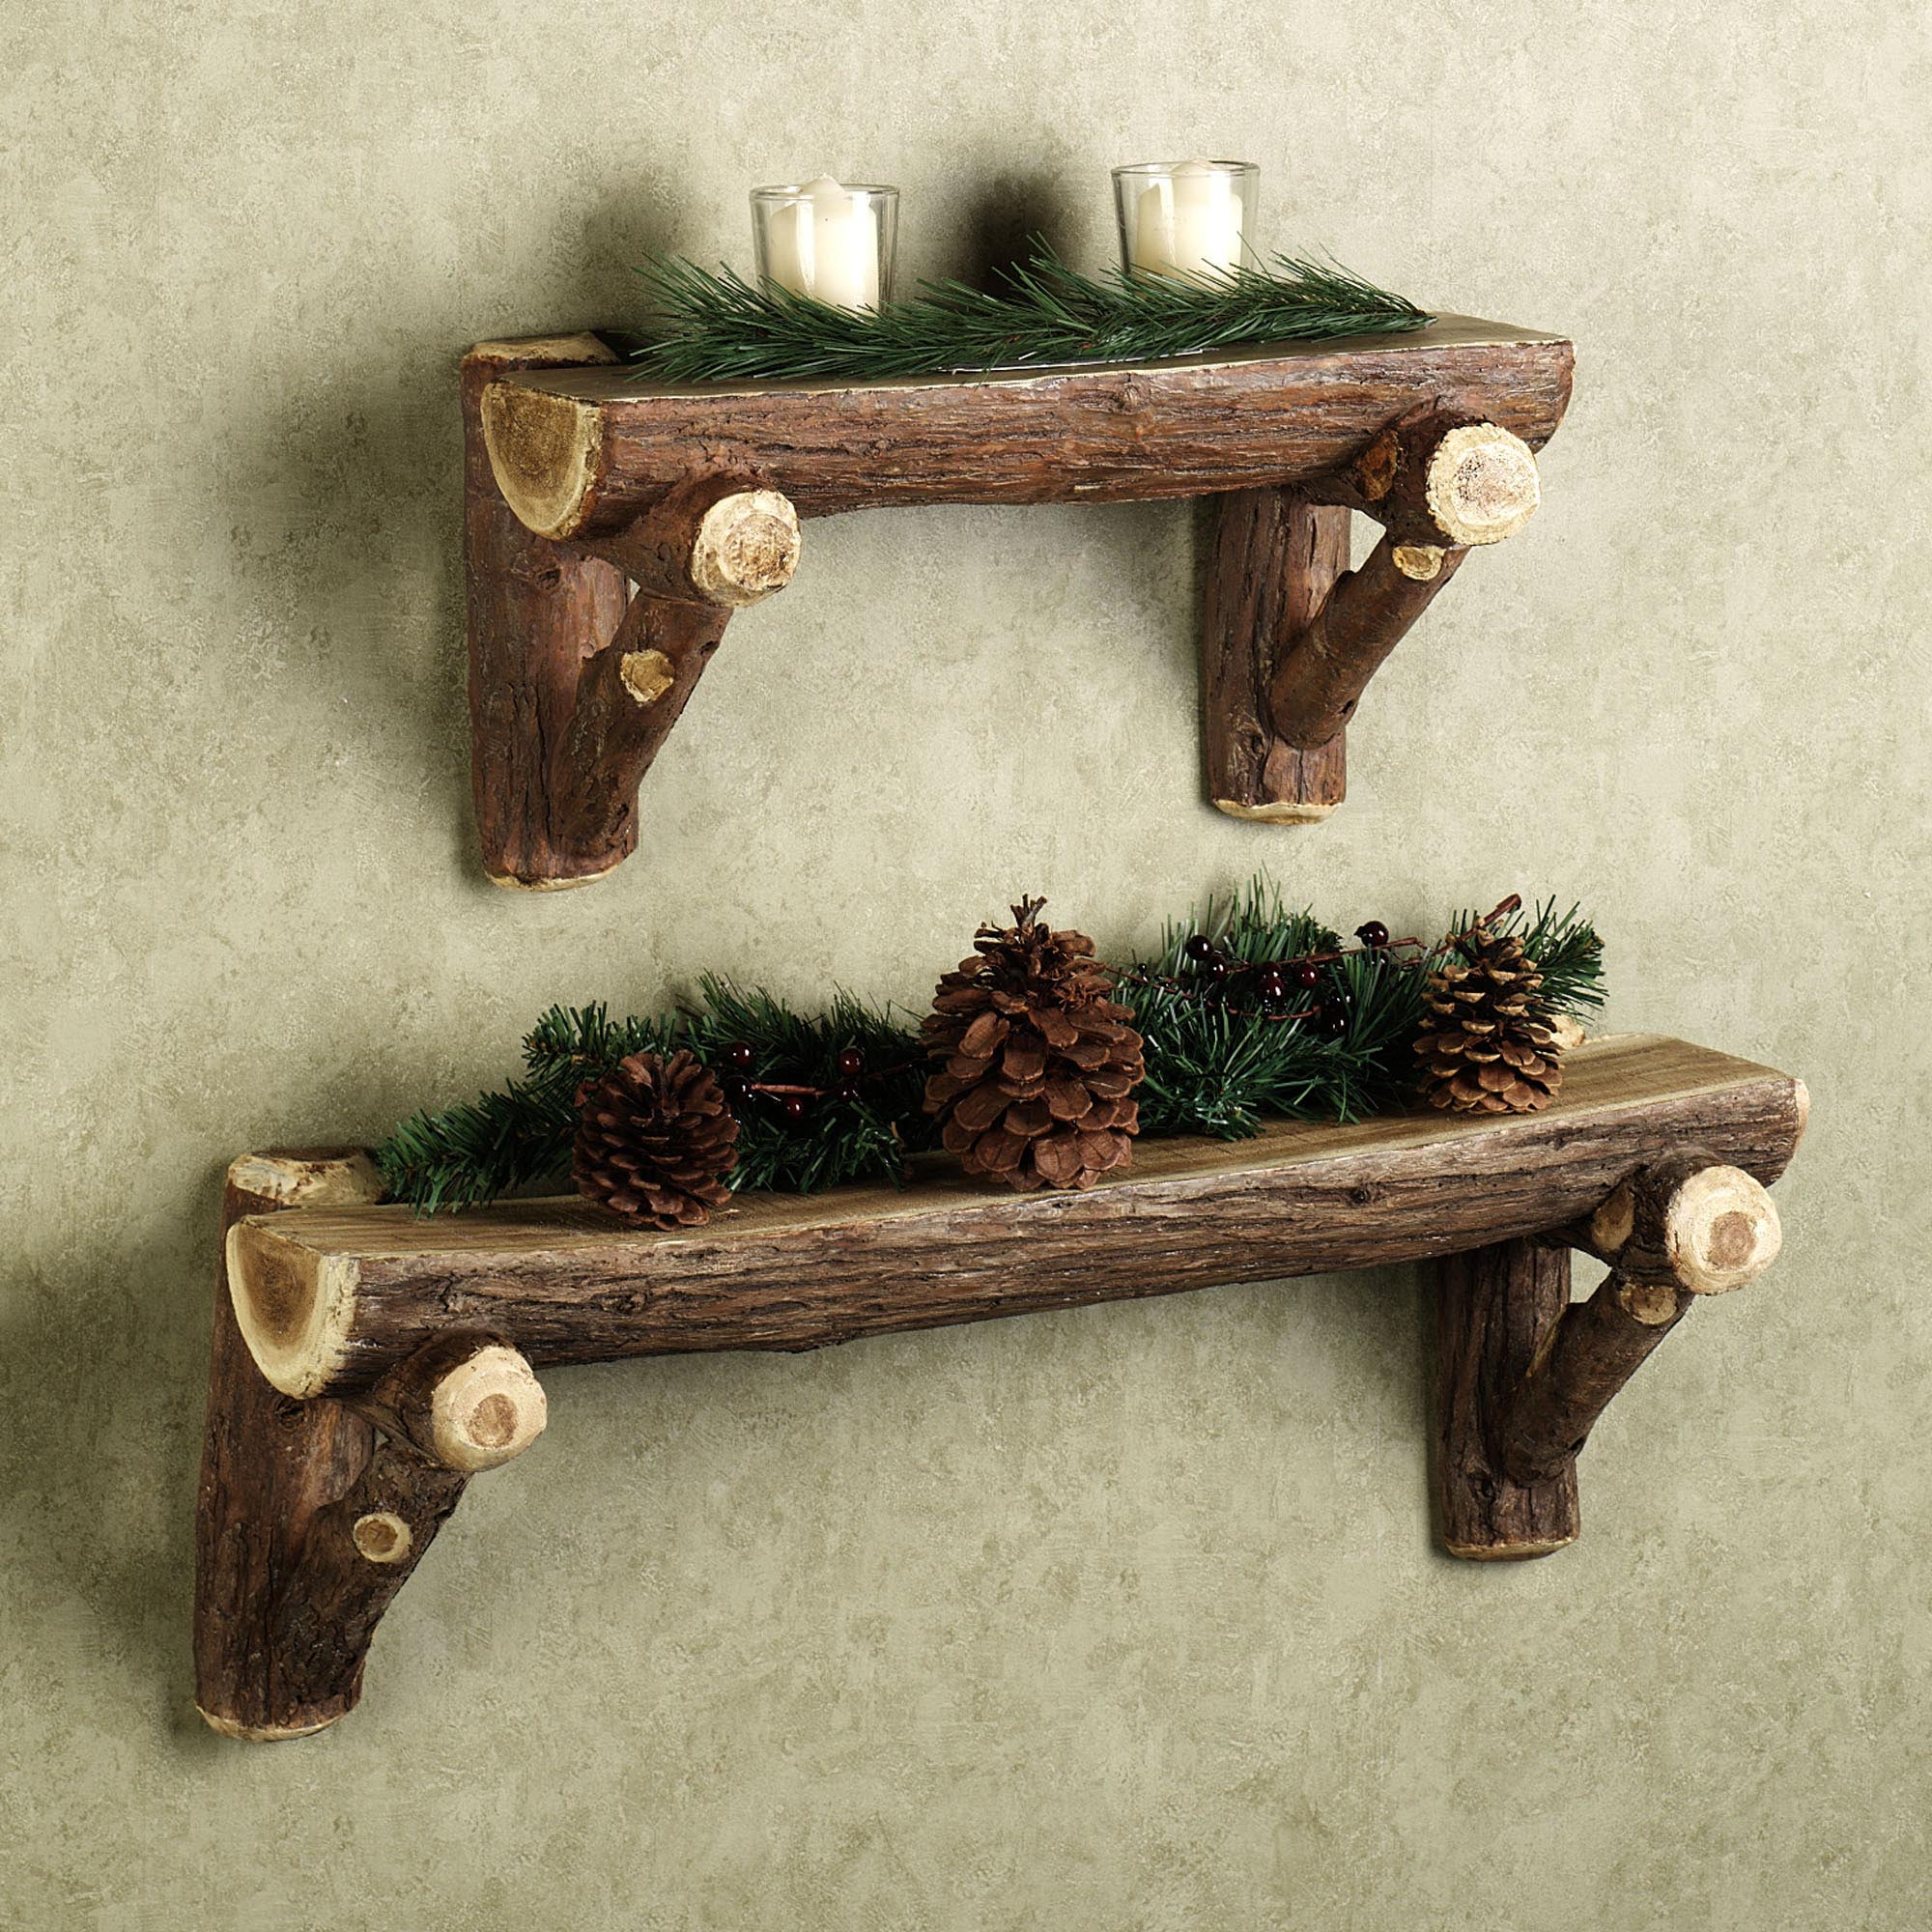 How to build wall shelves. inspiring ideas transitional childrens ...